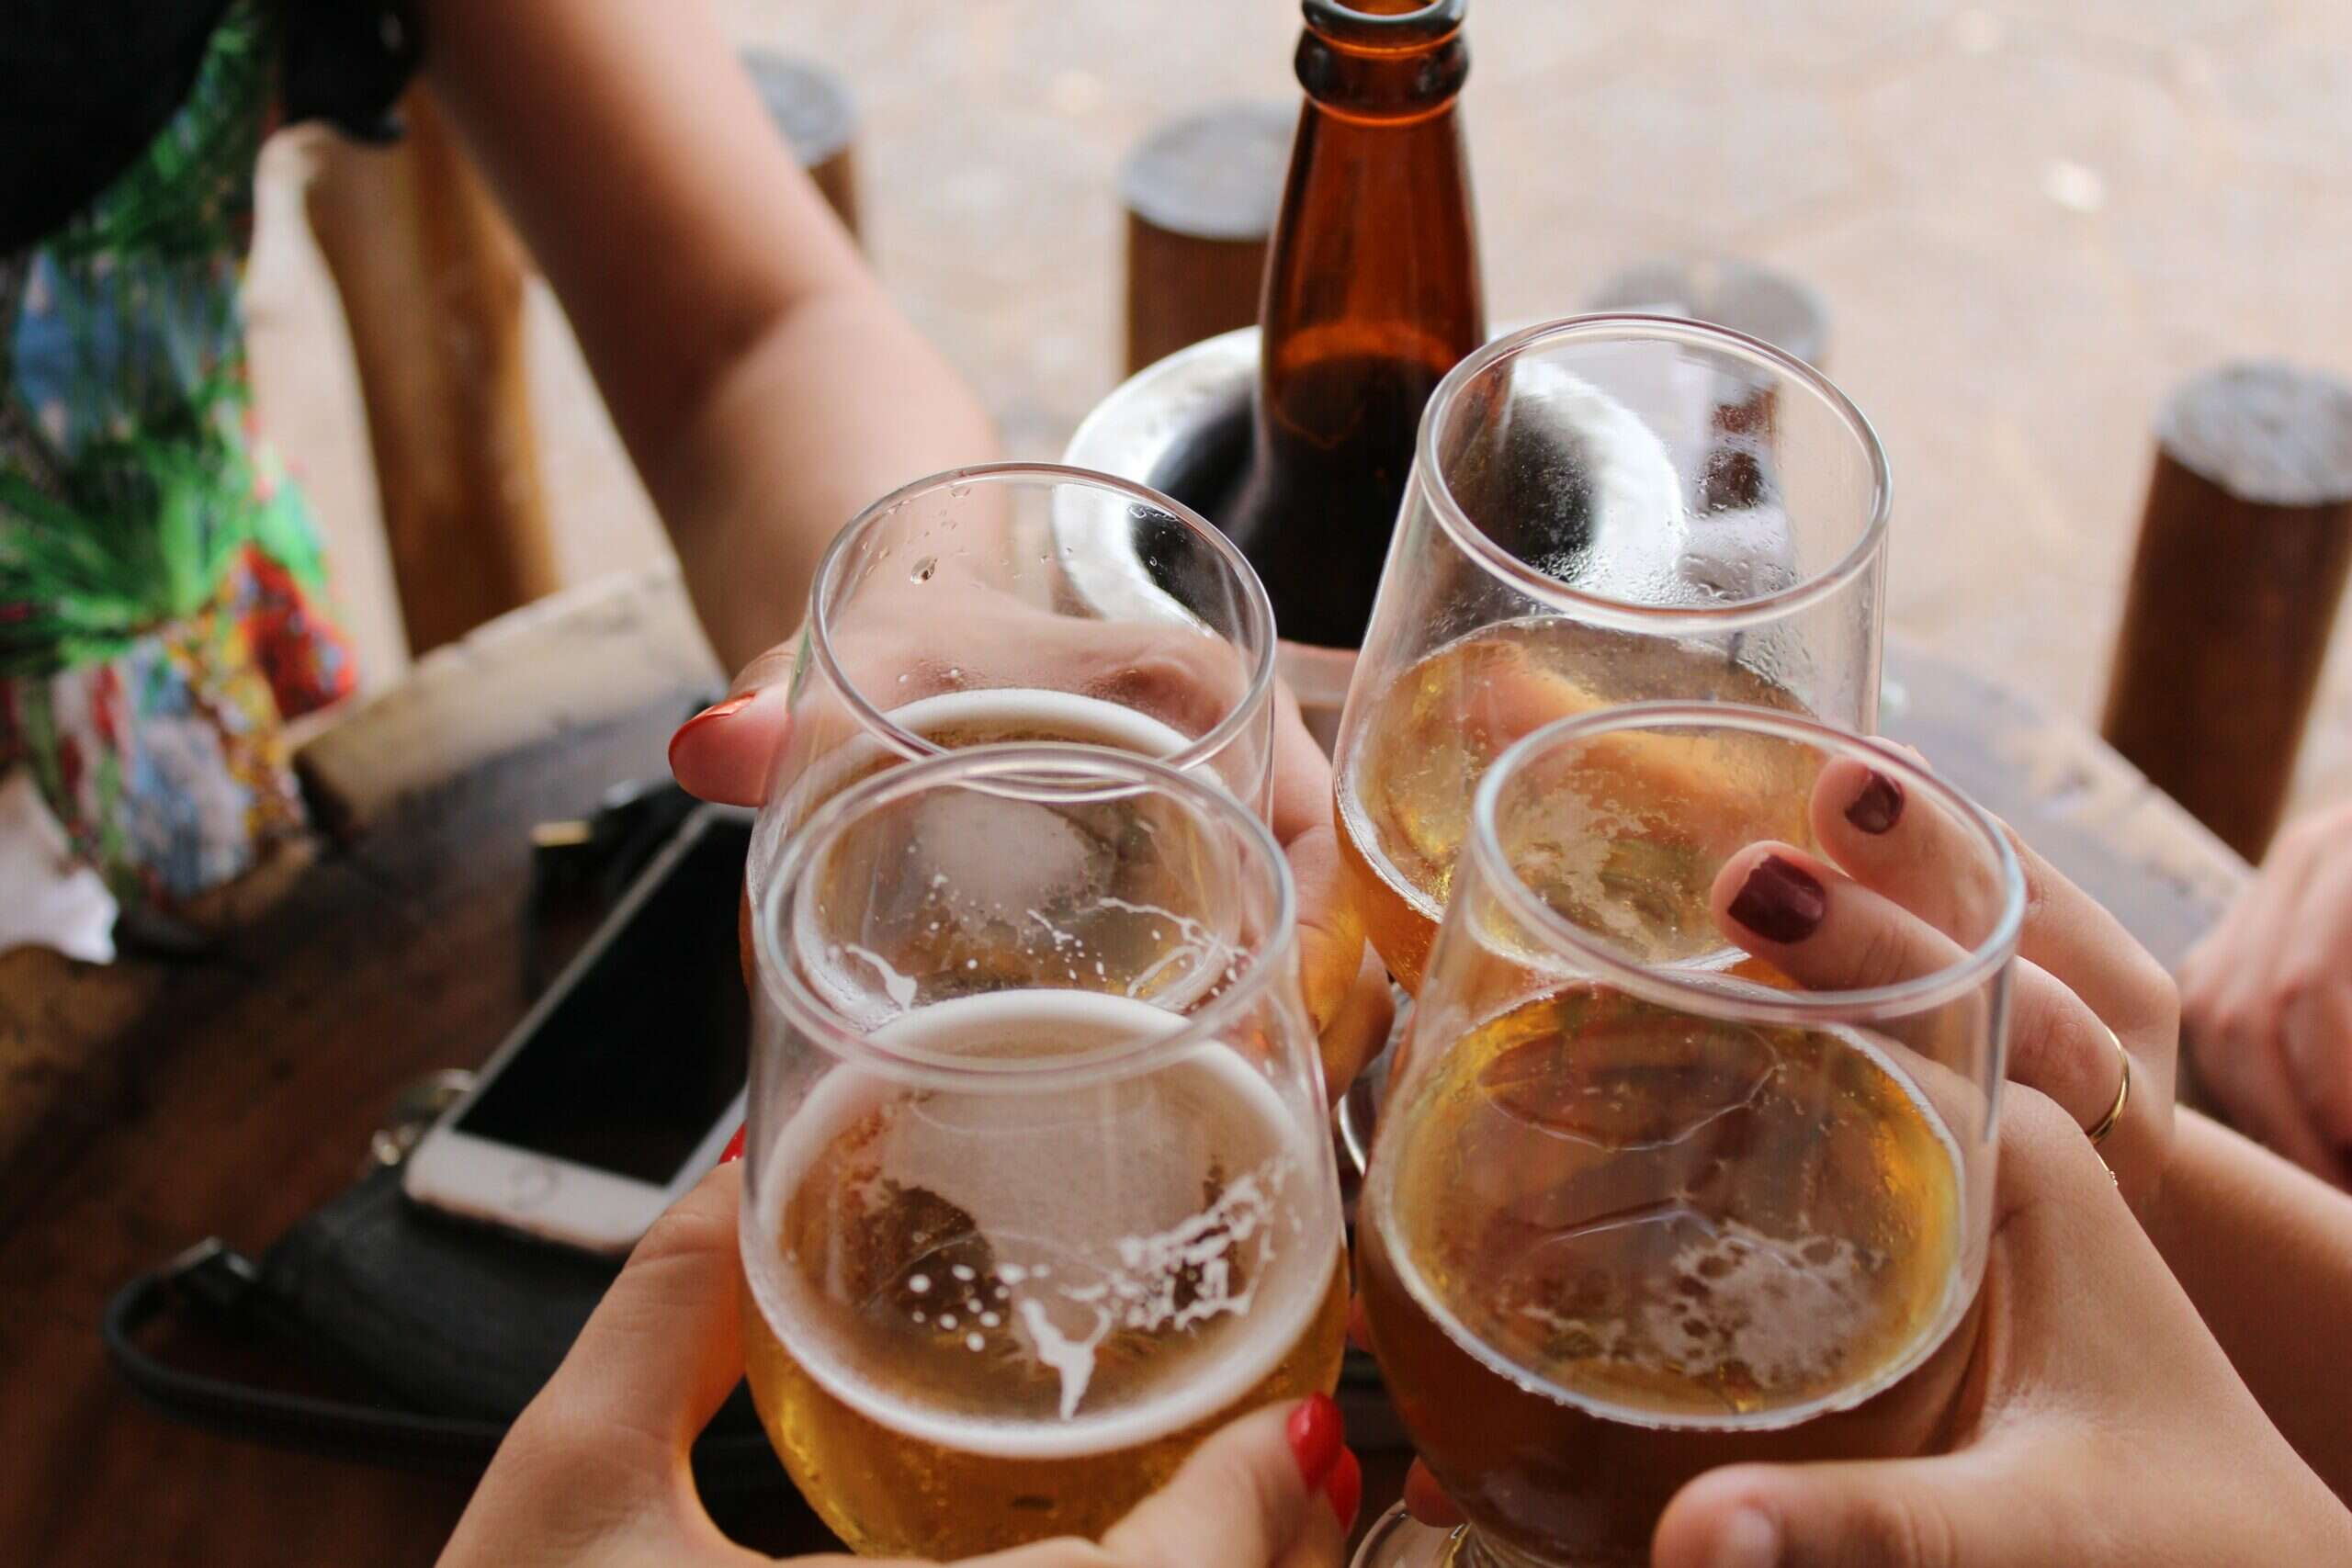 How drinking alcohol affects your health